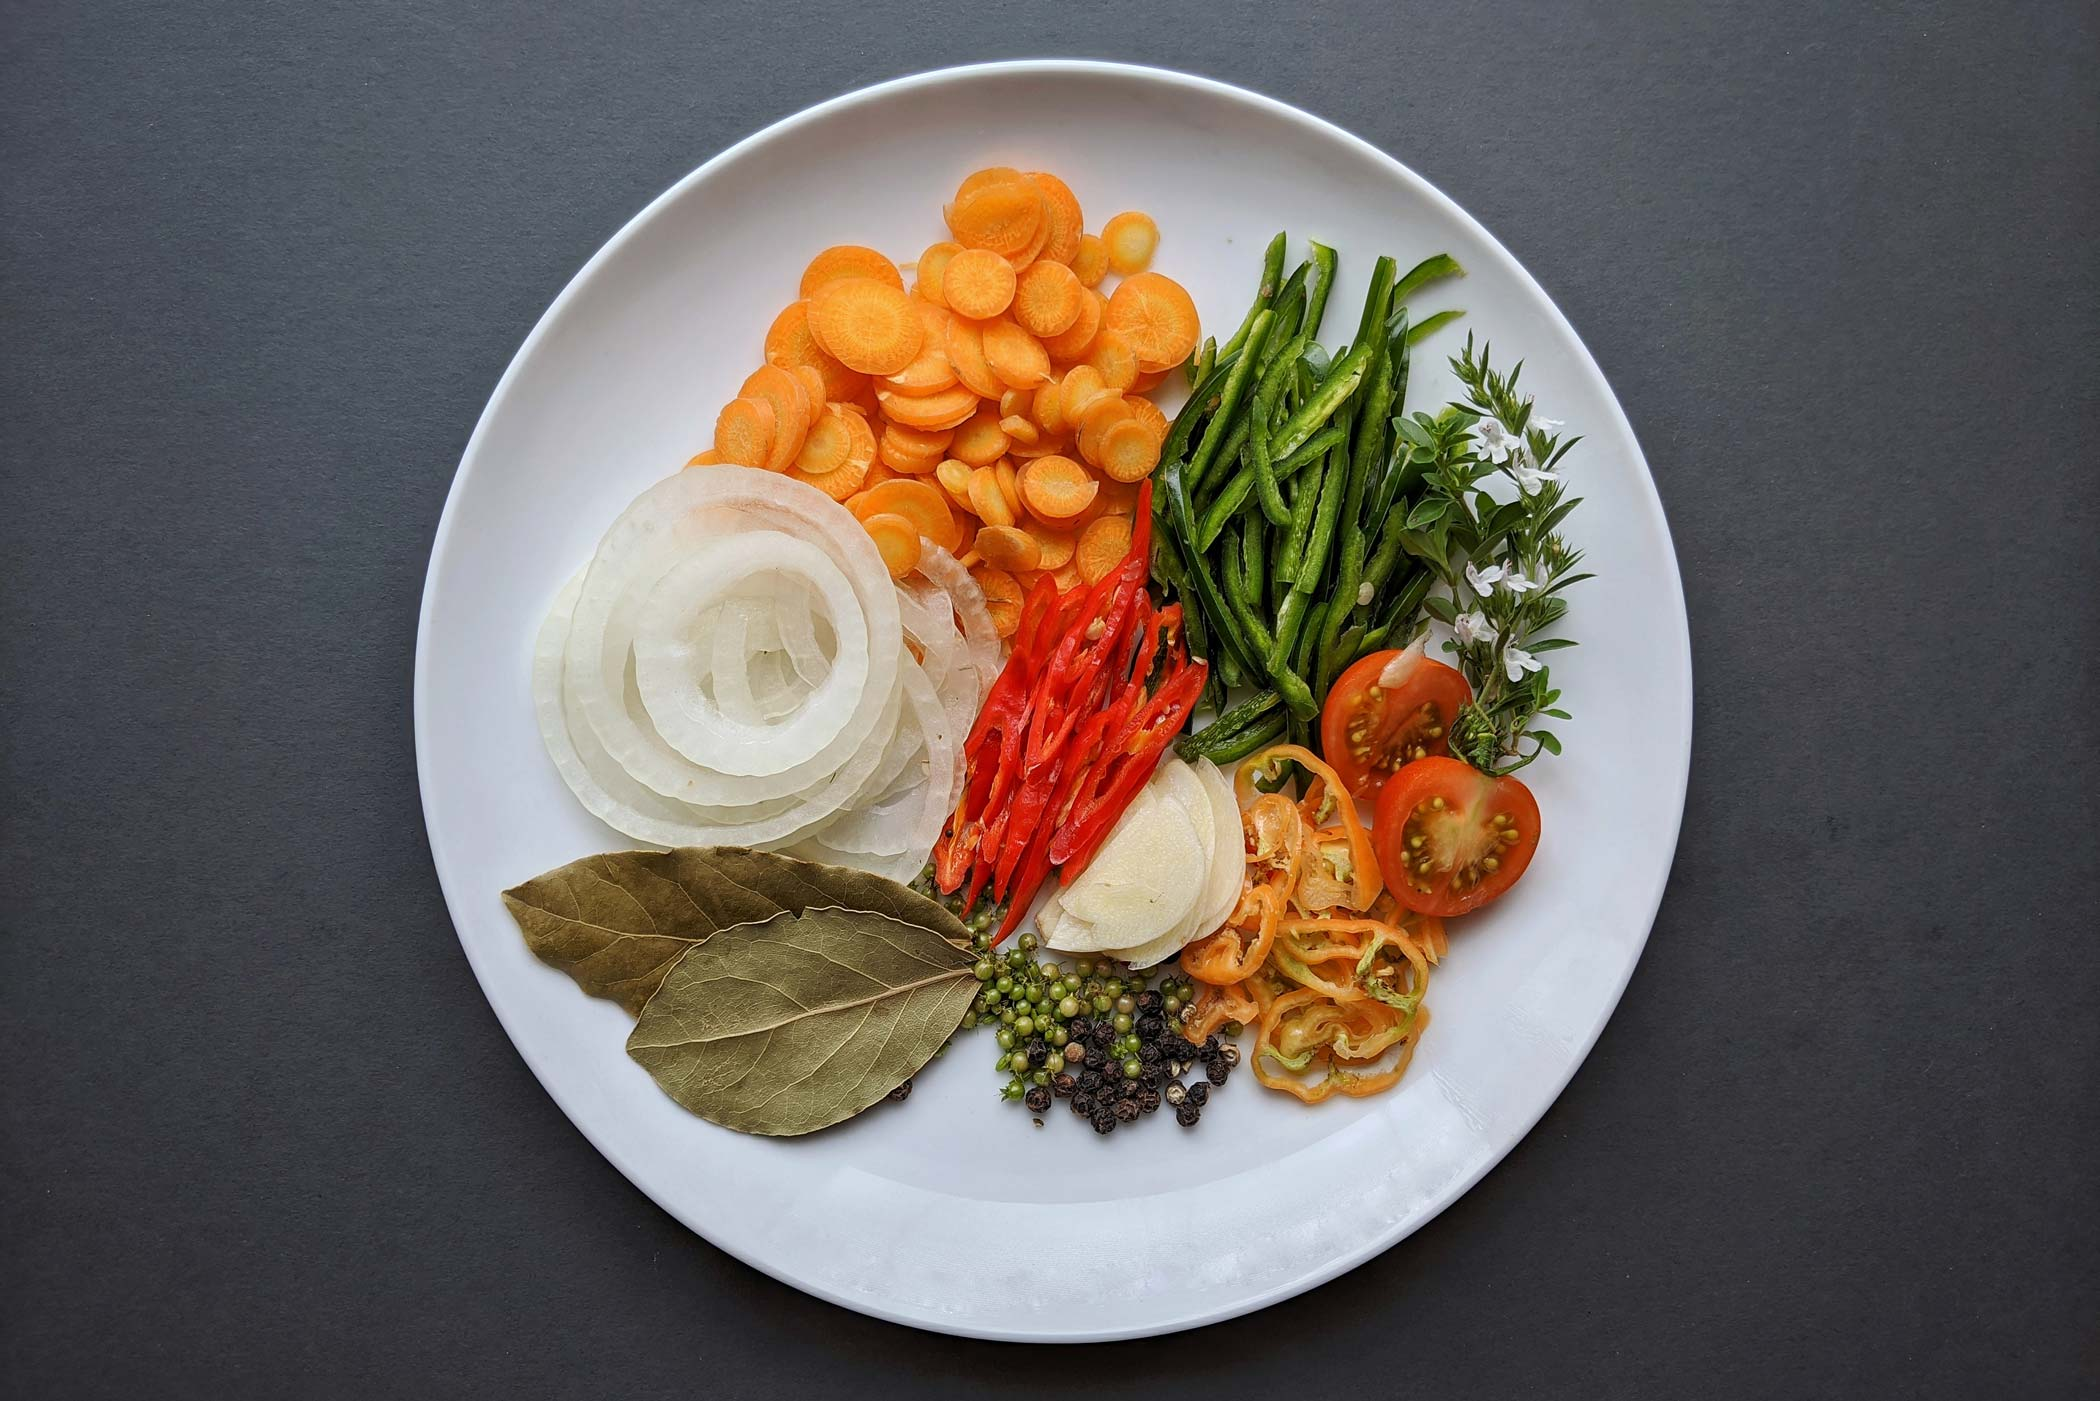 Fresh vegetables and spices on plate